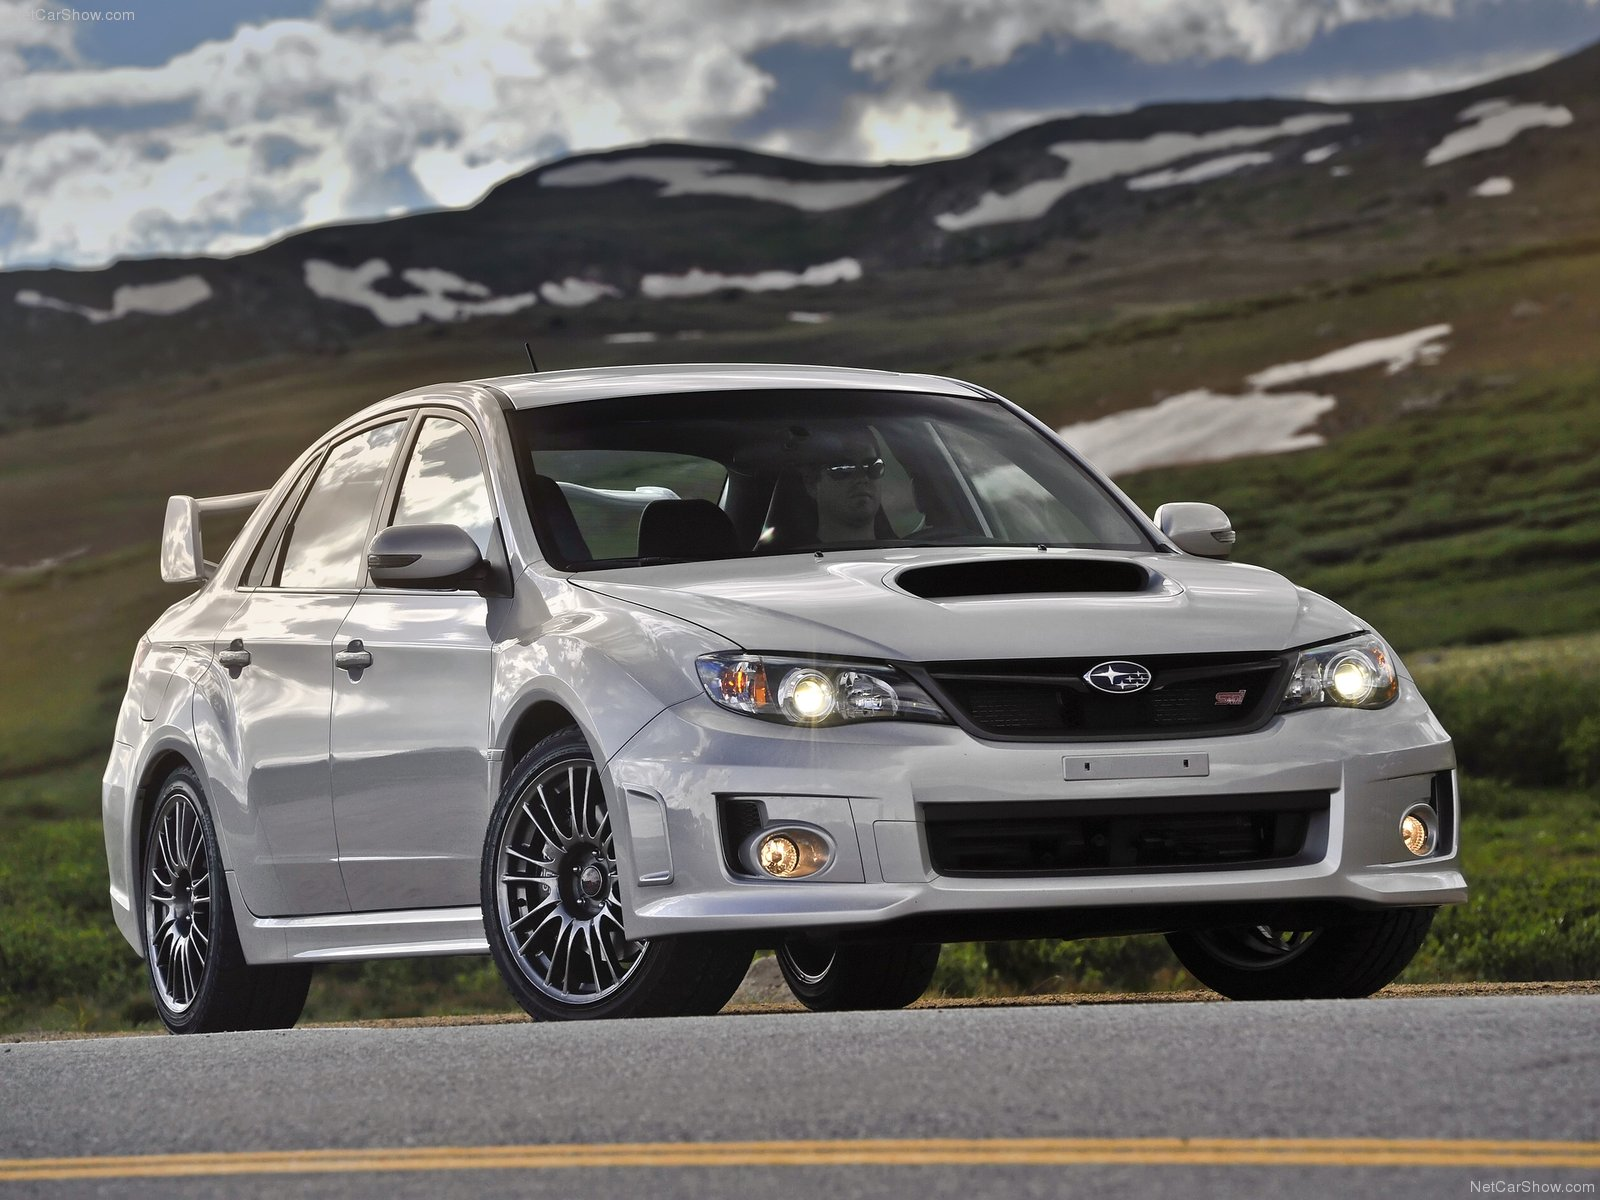 subaru impreza wrx sti 2011 sport cars. Black Bedroom Furniture Sets. Home Design Ideas